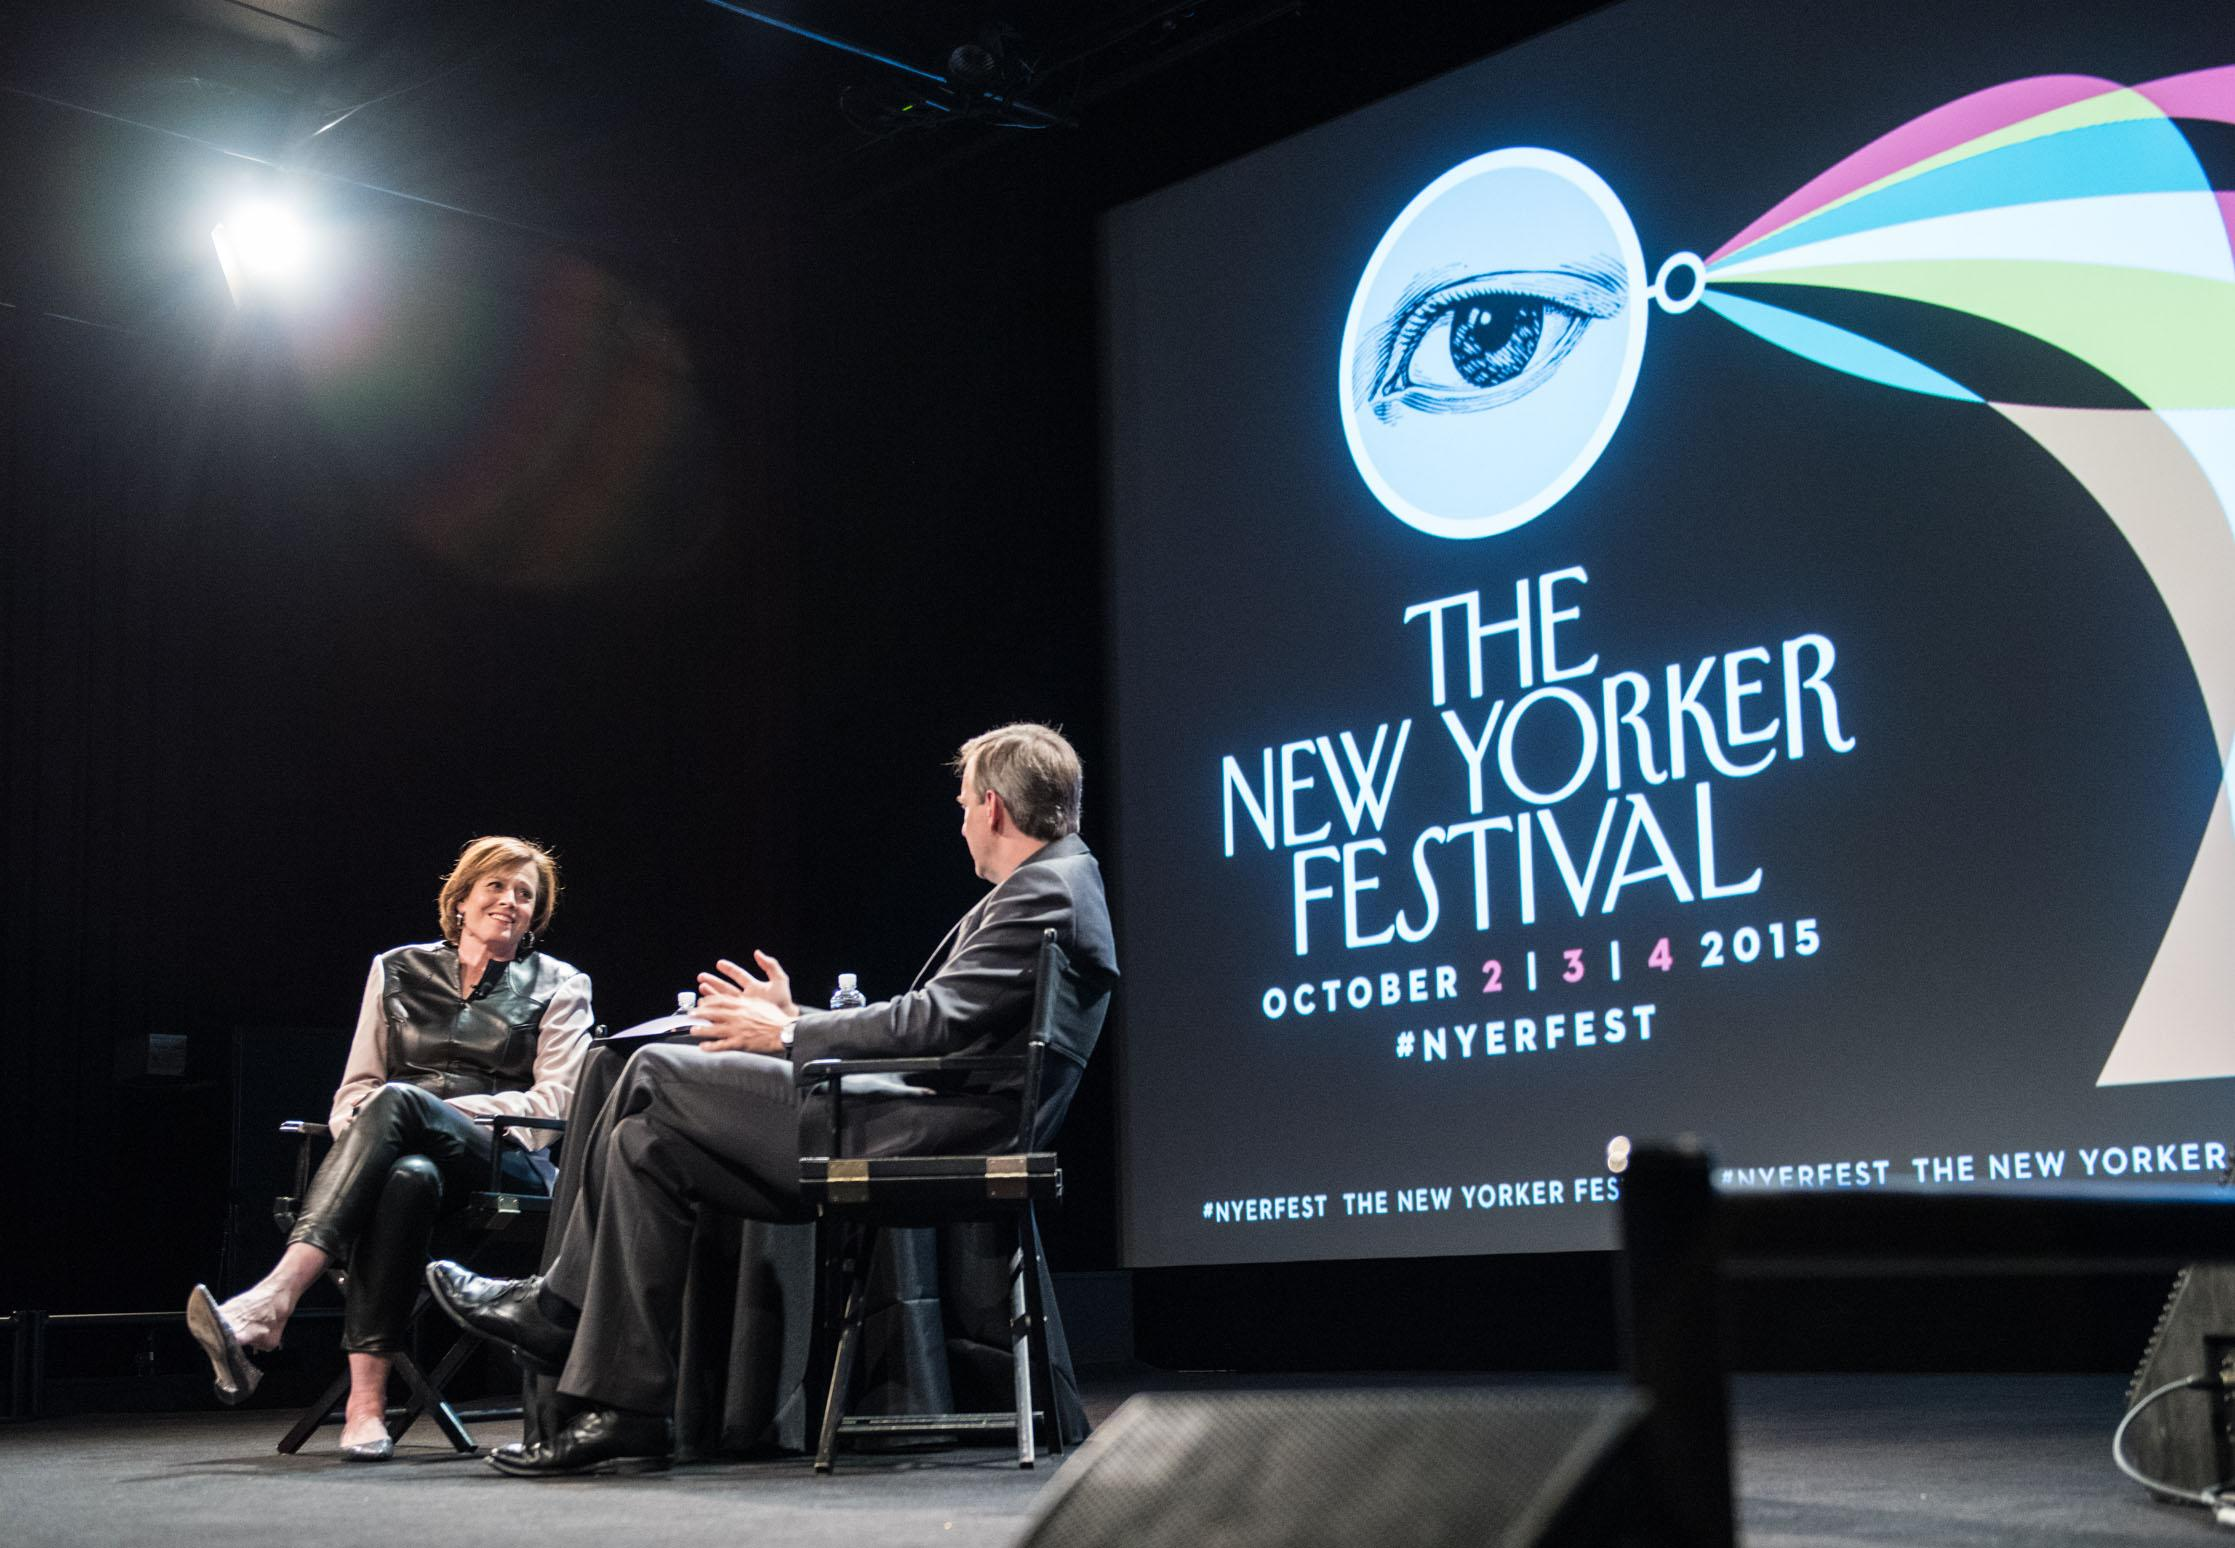 Earthquakes, elections and more dissected at New Yorker fest